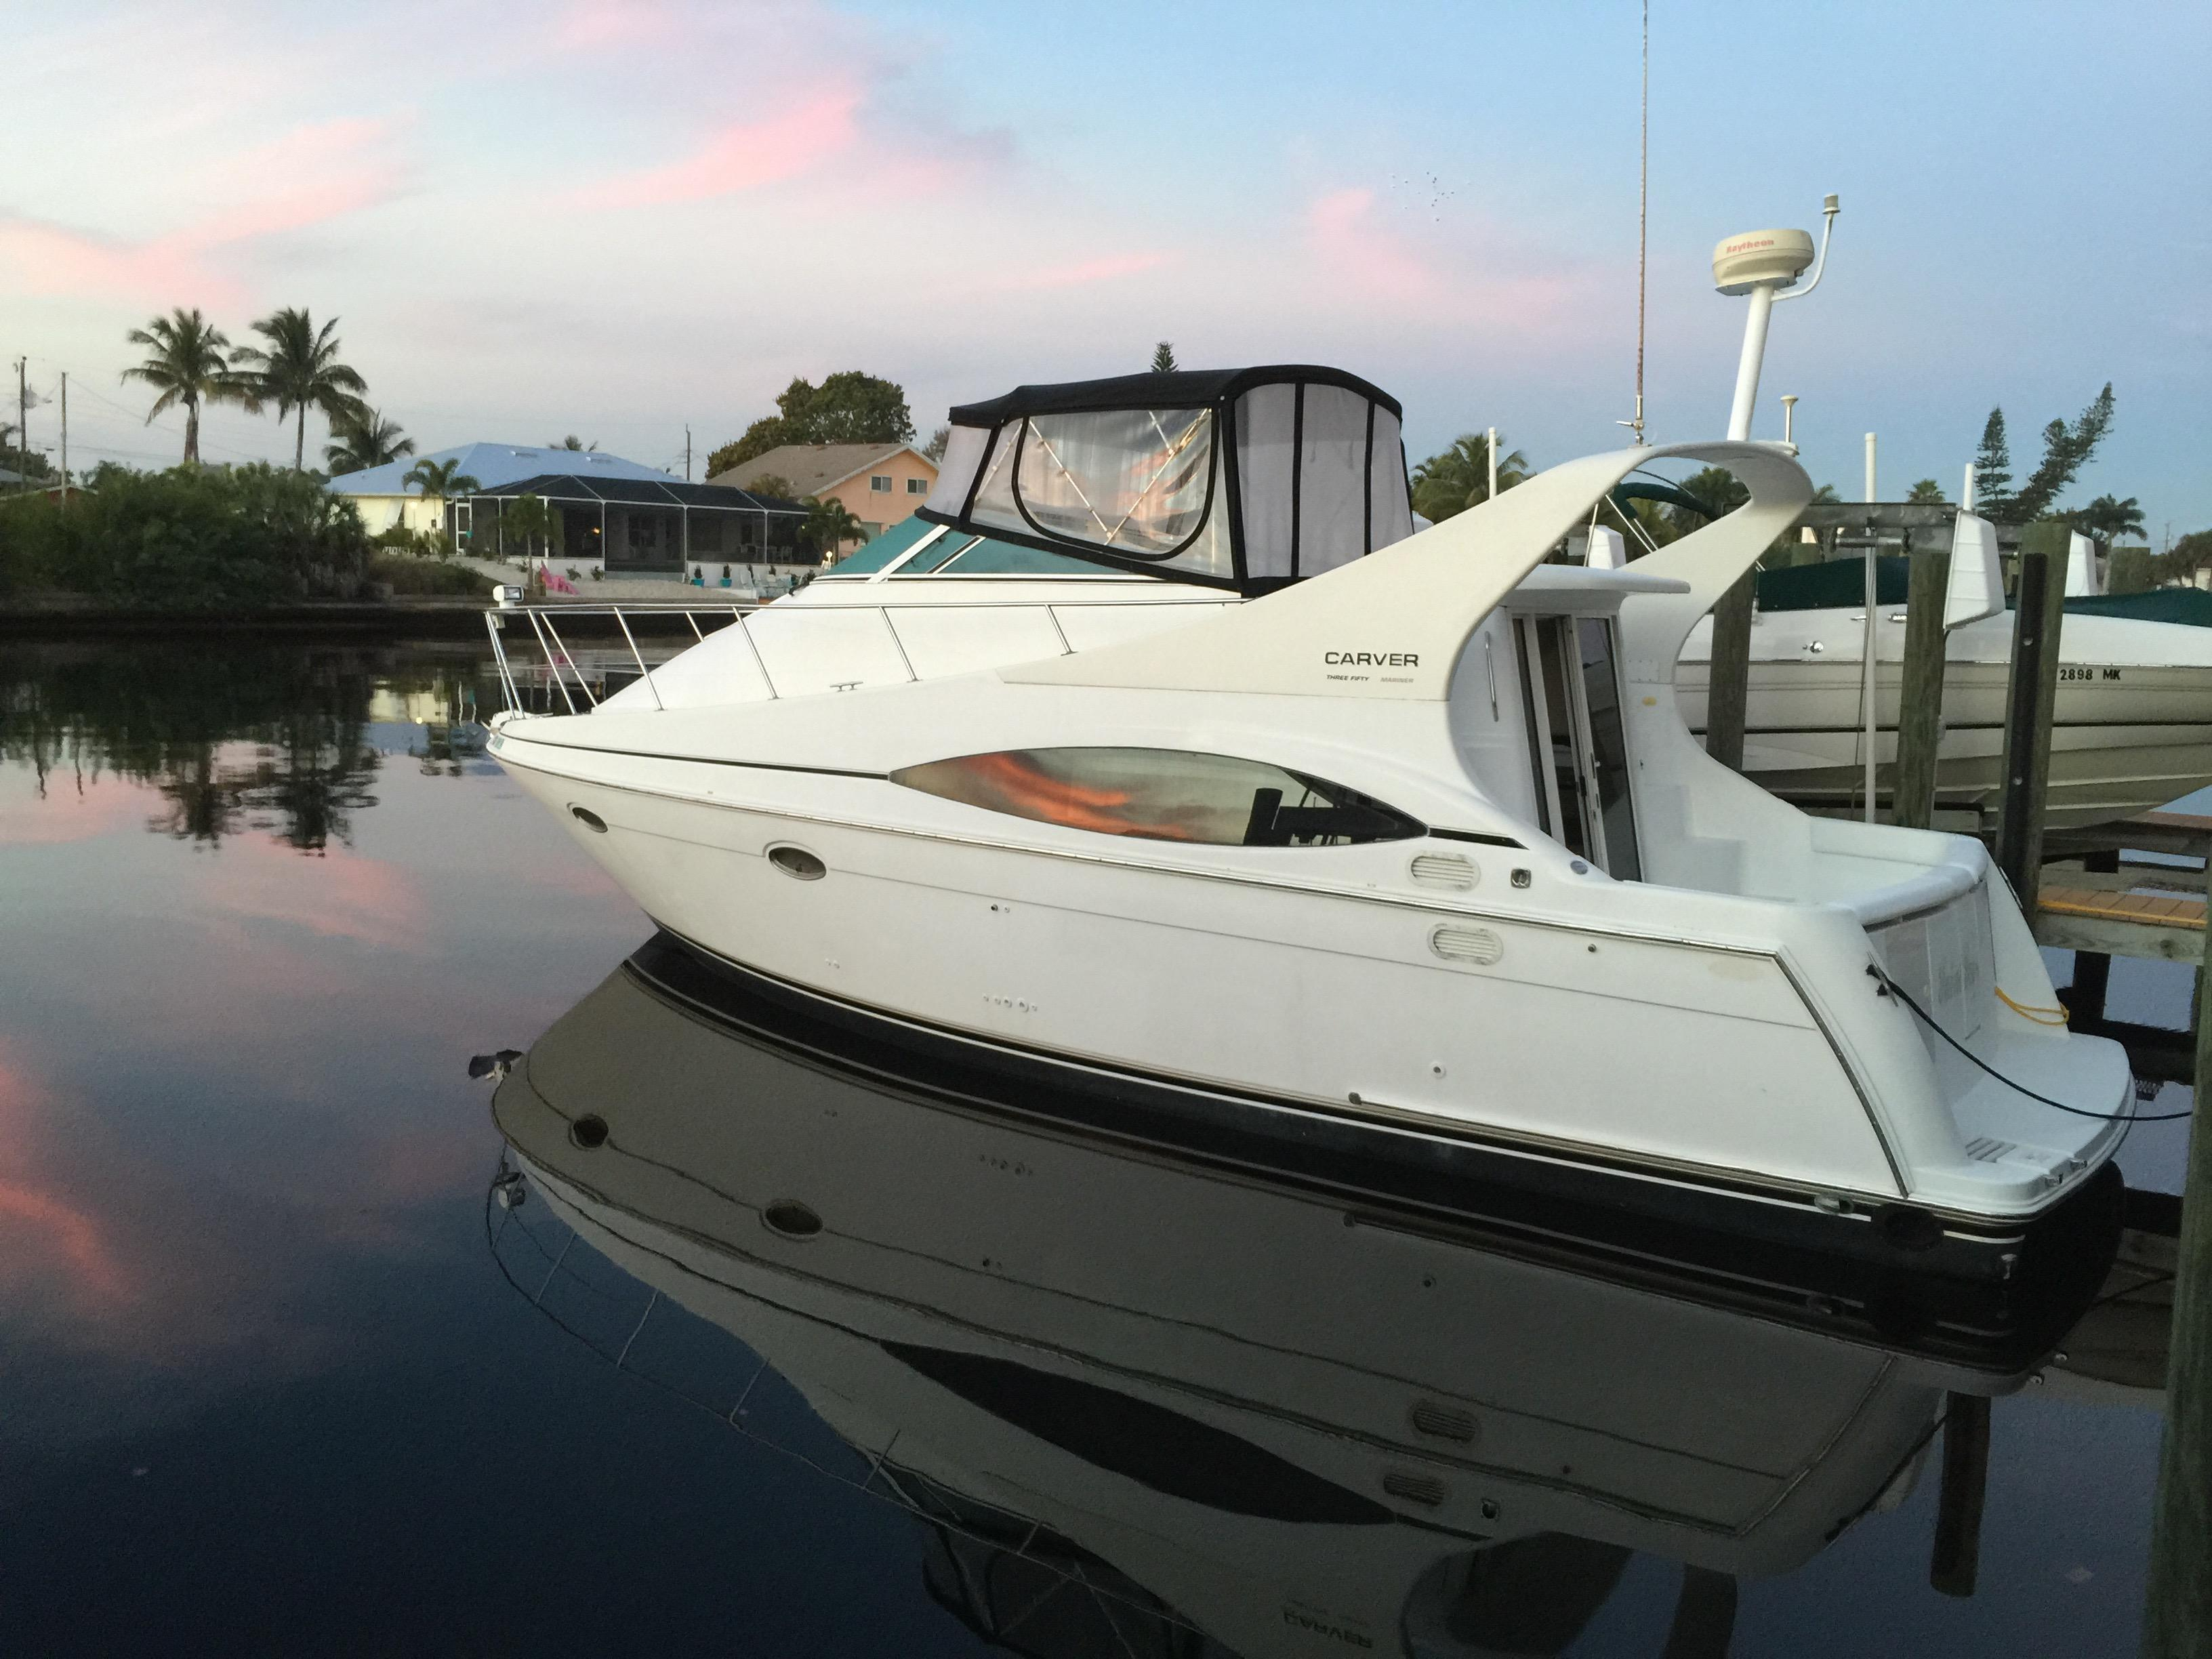 Boat listings in somerset ky for T t motors somerset kentucky